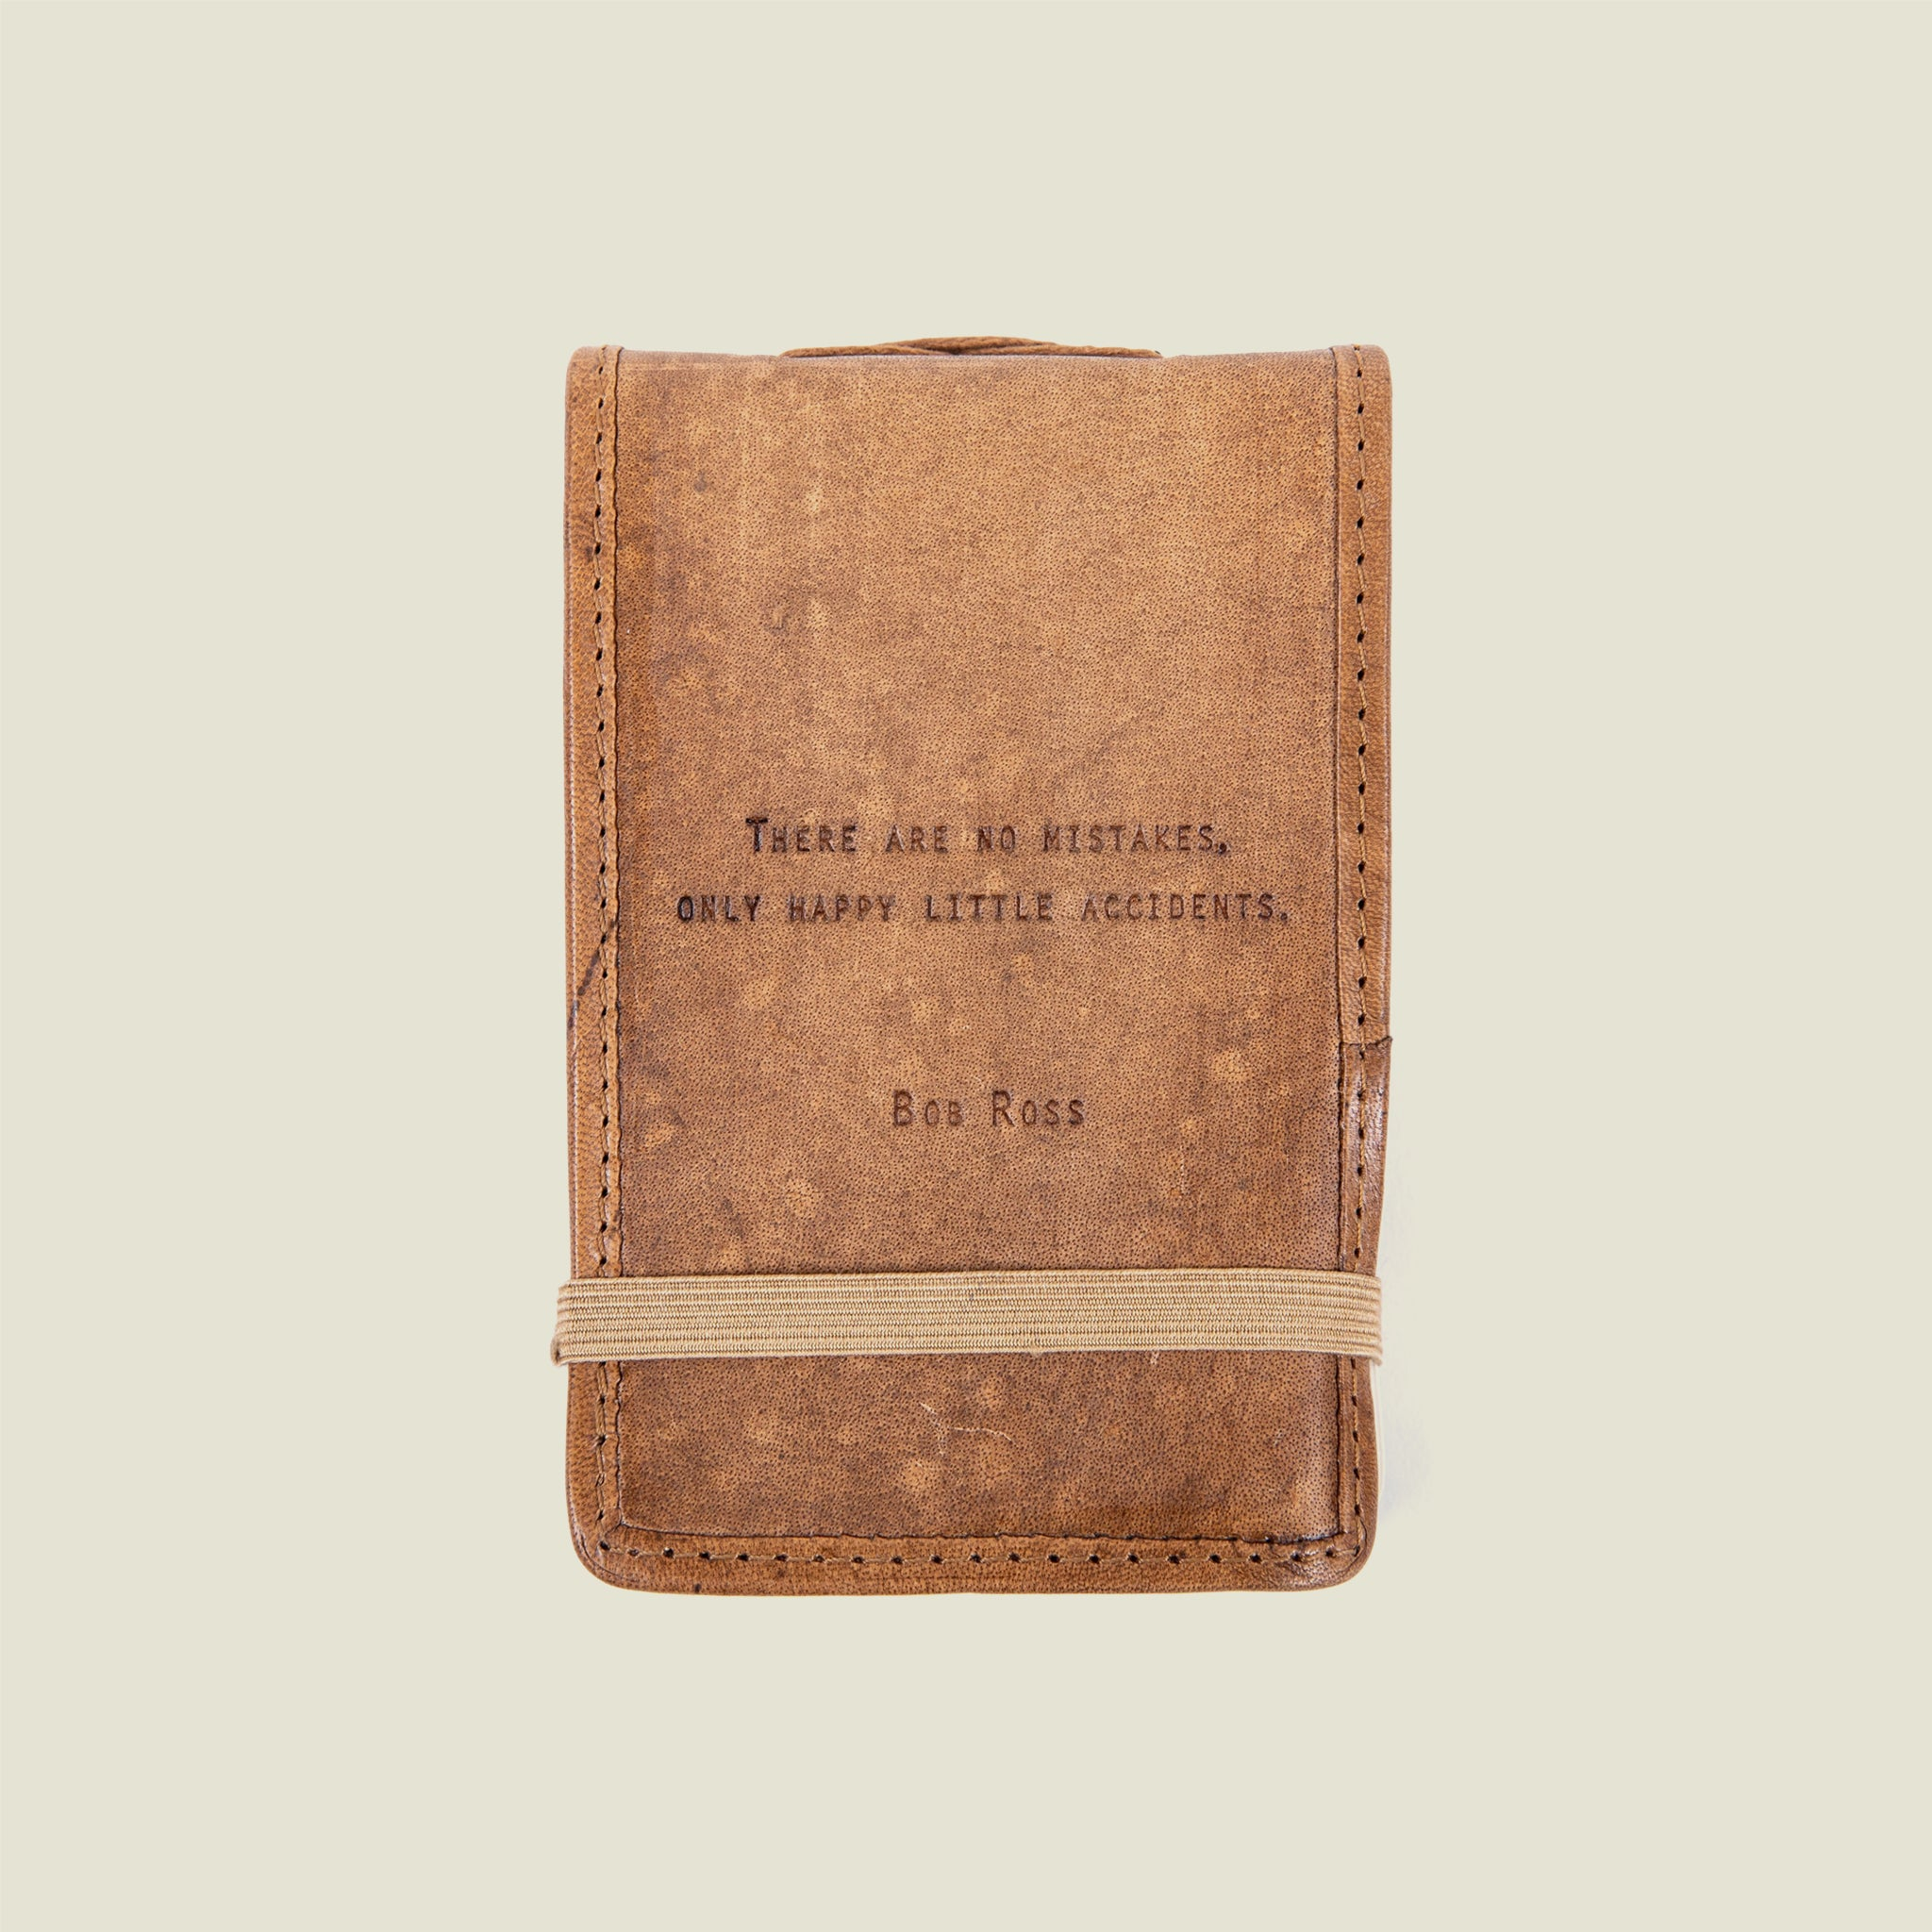 Bob Ross Leather Journal 4x6 - Blackbird General Store